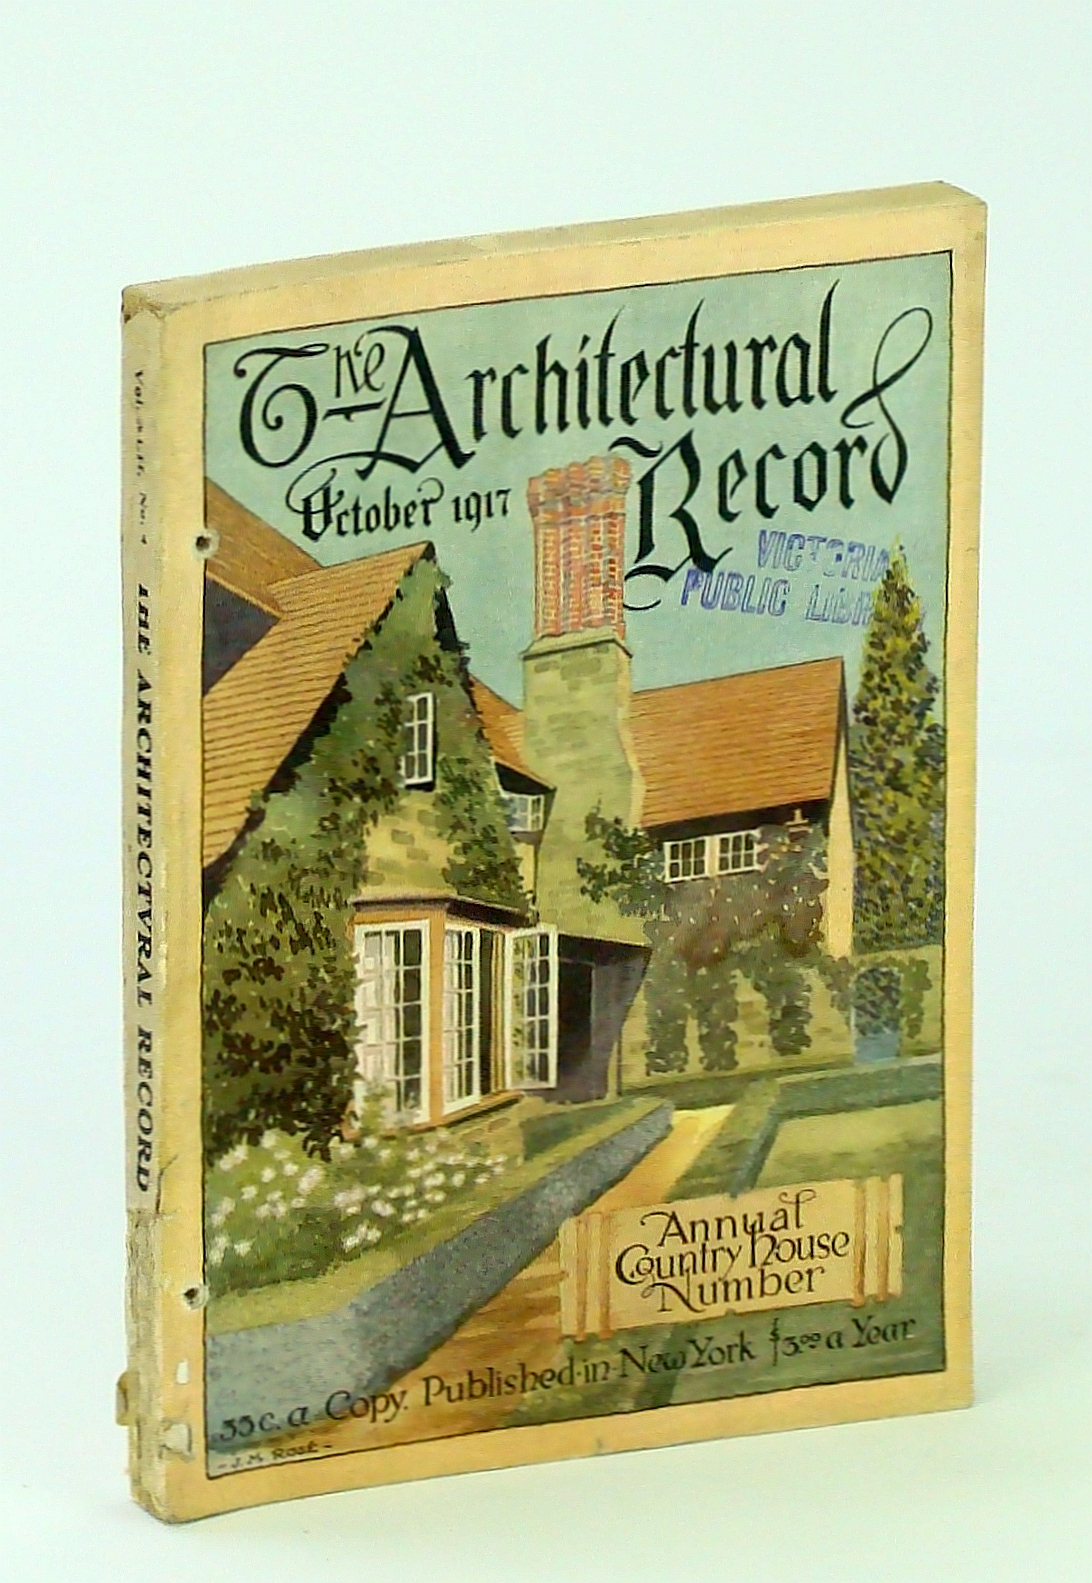 Image for The Architectural Record, October [Oct.] 1917, Vol. XLII, No. 4, Serial No. 229: Special American Country House Issue